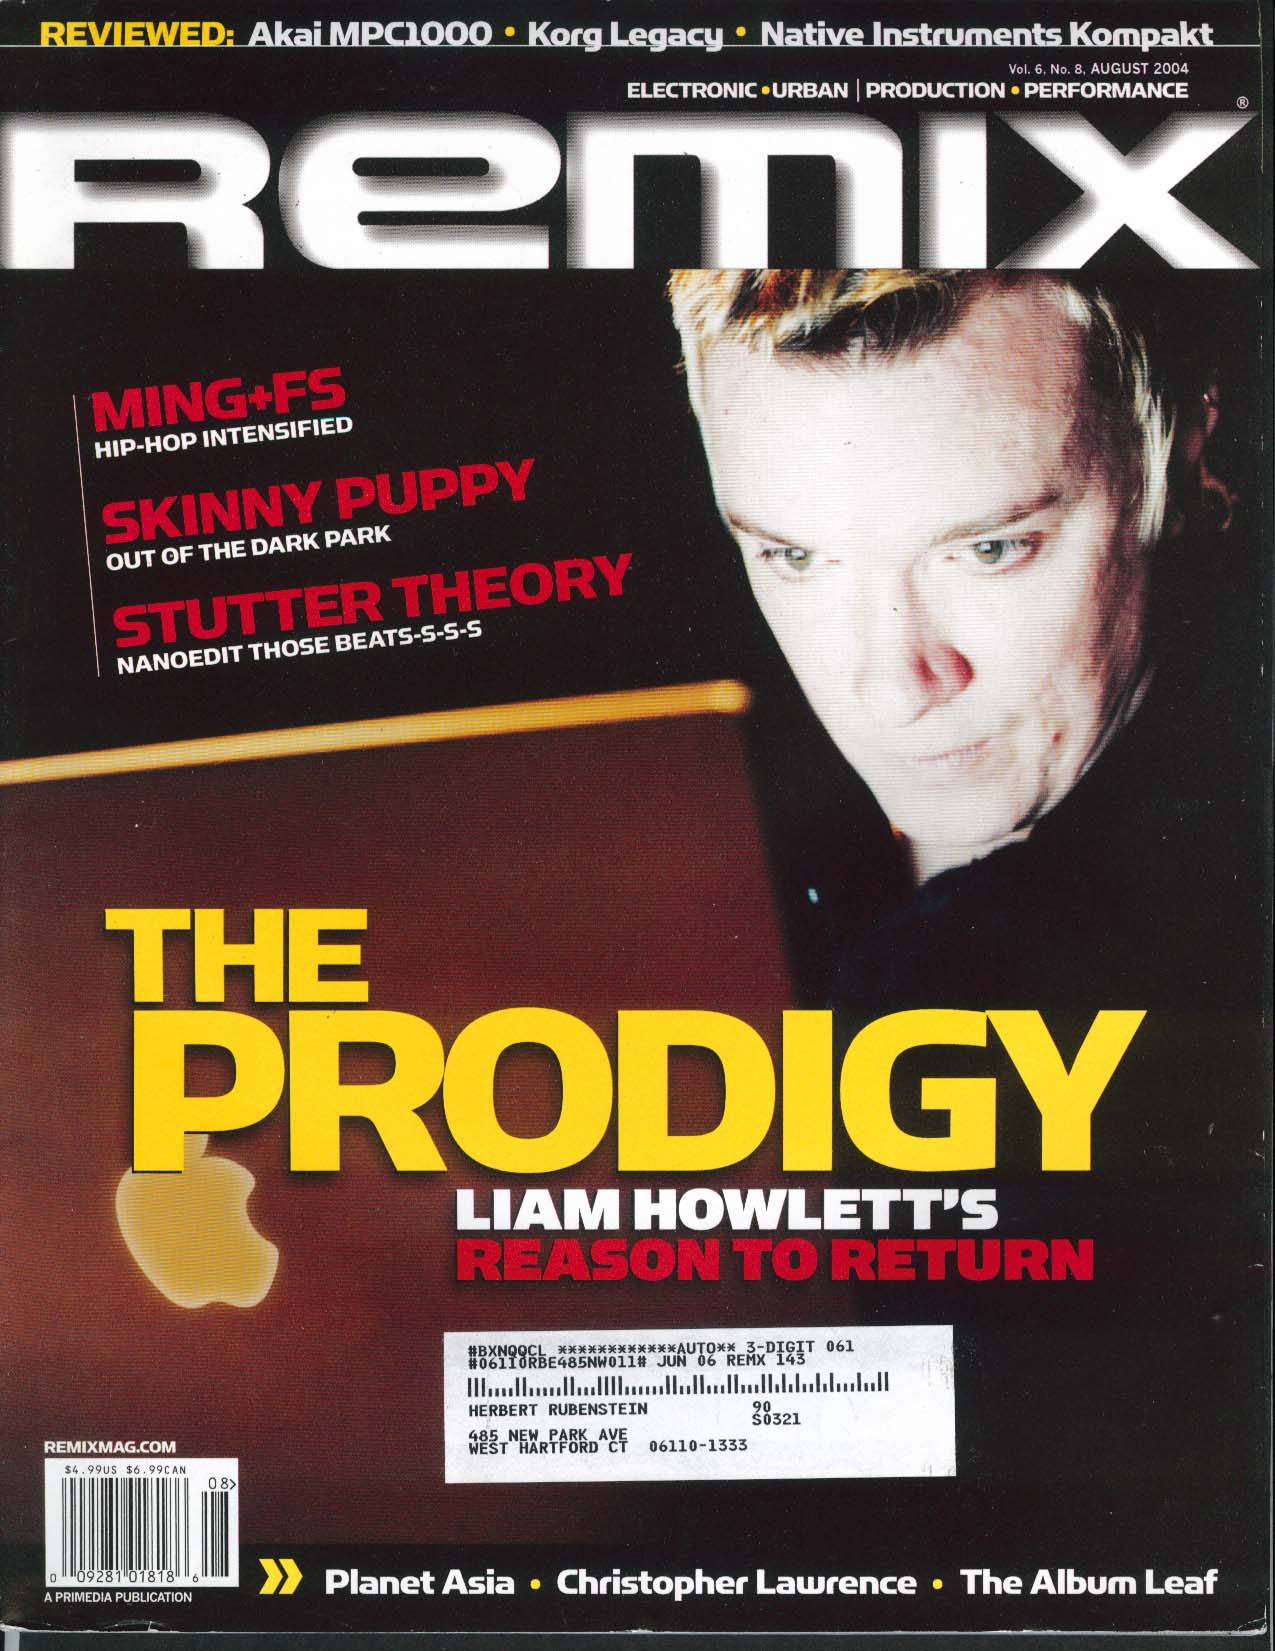 Image for REMIX Skinny Puppy Stytter Theory Liam Howlett Christopher Lawrence ++ 8 2004